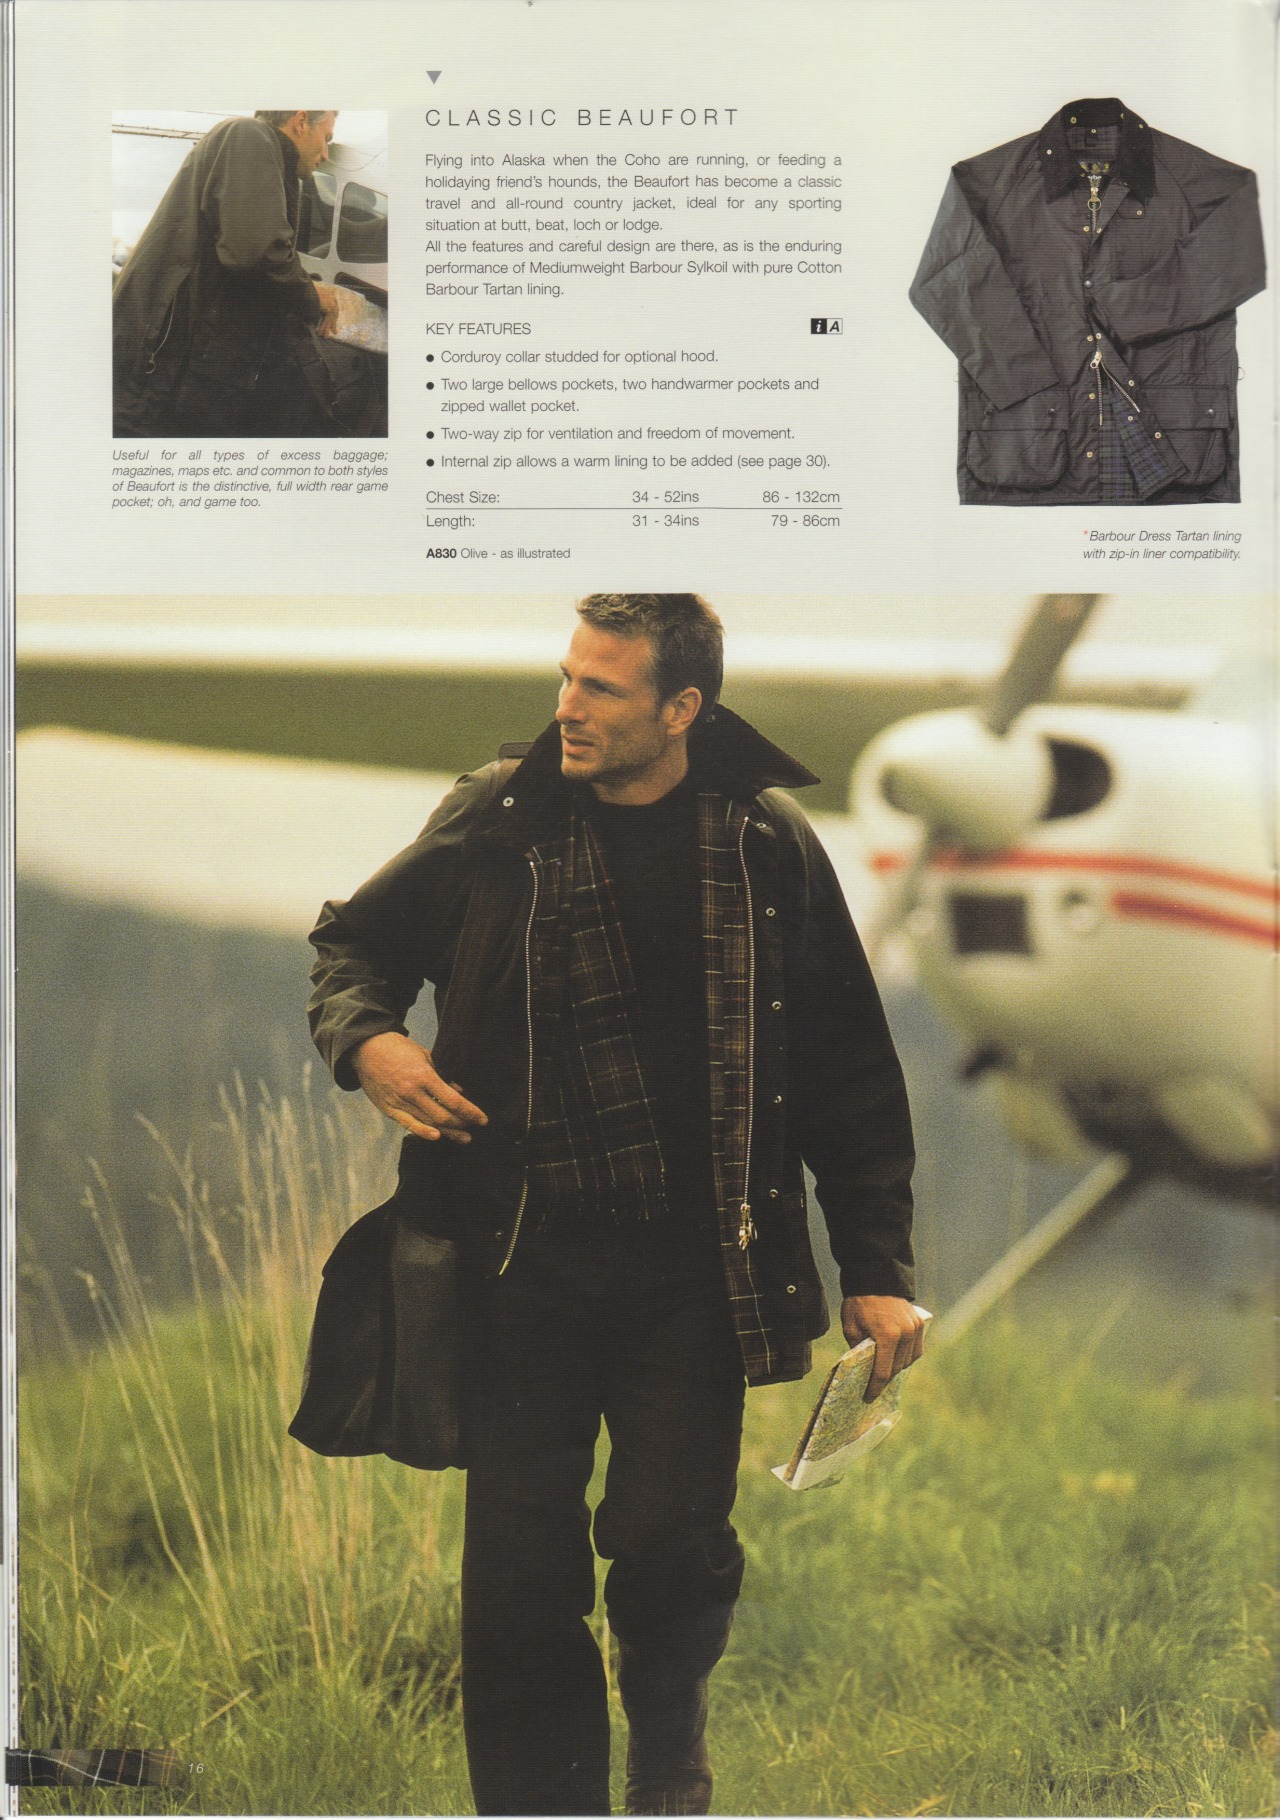 Barbour Beaufort from the 2001-02 catalog.